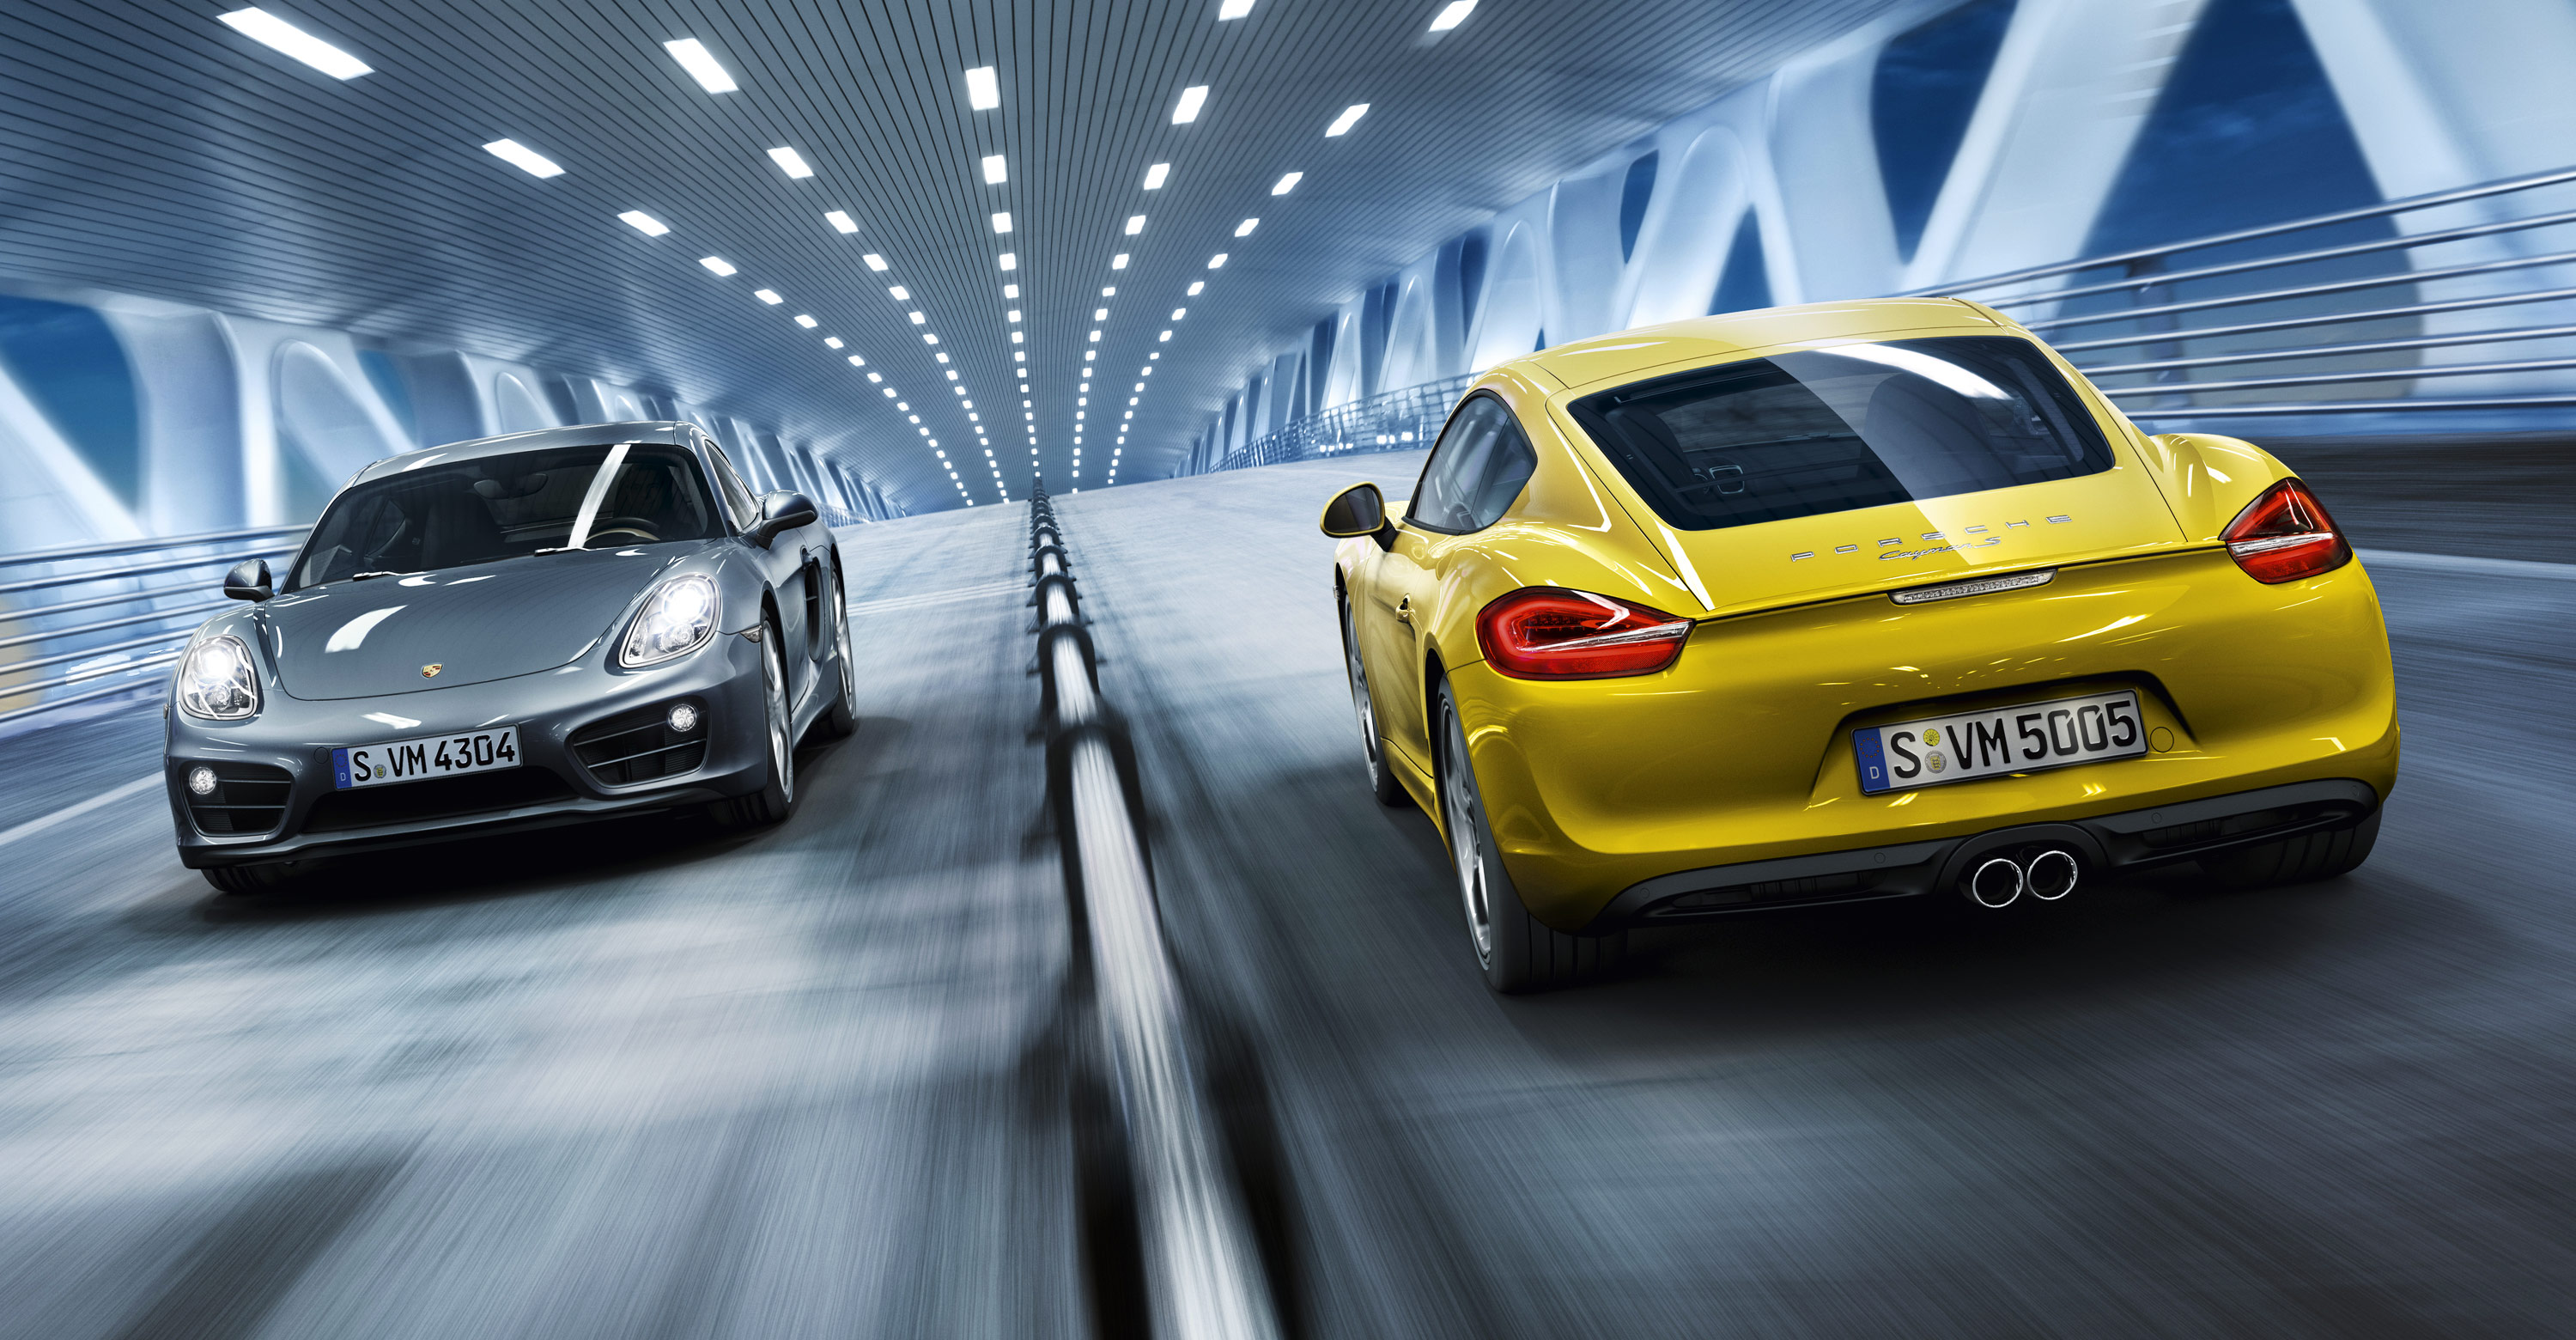 2013-porsche-cayman-s-wallpaper_14